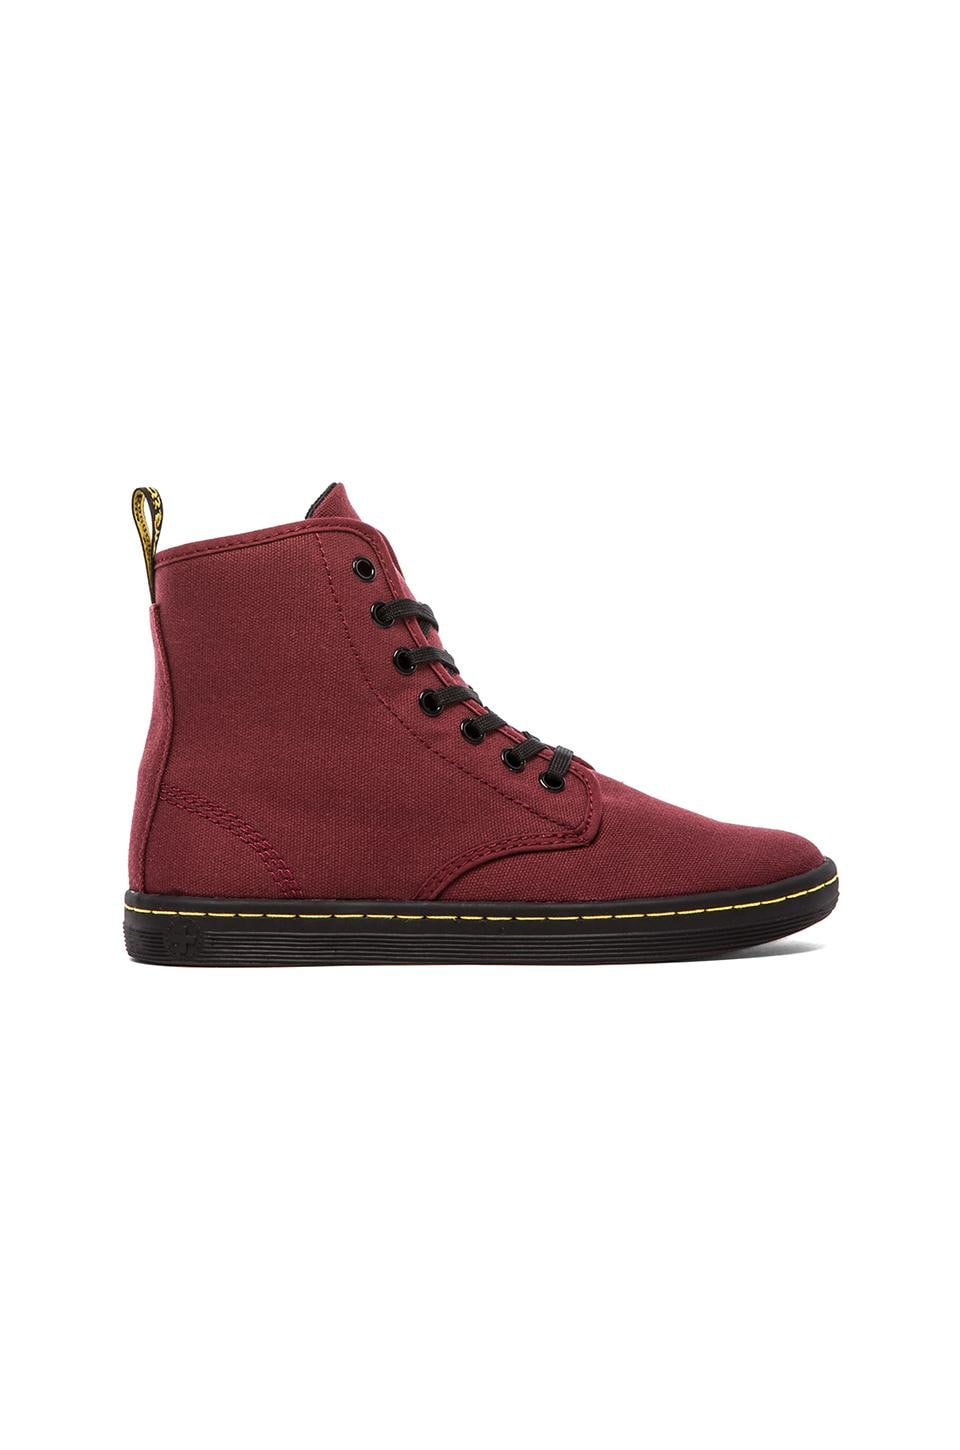 Dr. Martens Shoreditch 7-Eye Sneaker in Cherry Red